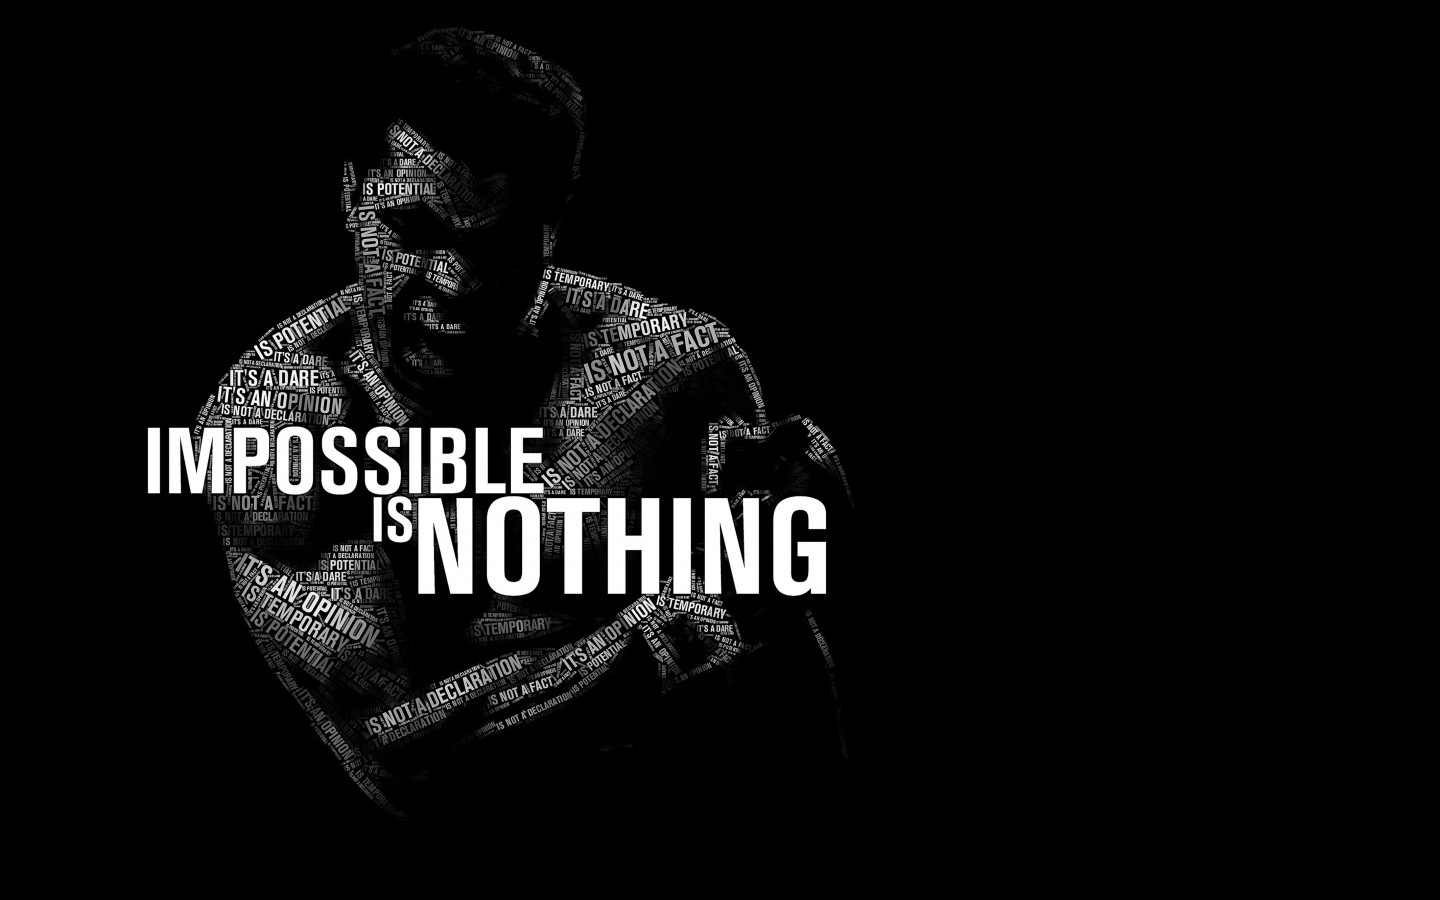 Impossible Is Nothing - Muhammad Ali Wallpaper for Desktop 1440x900